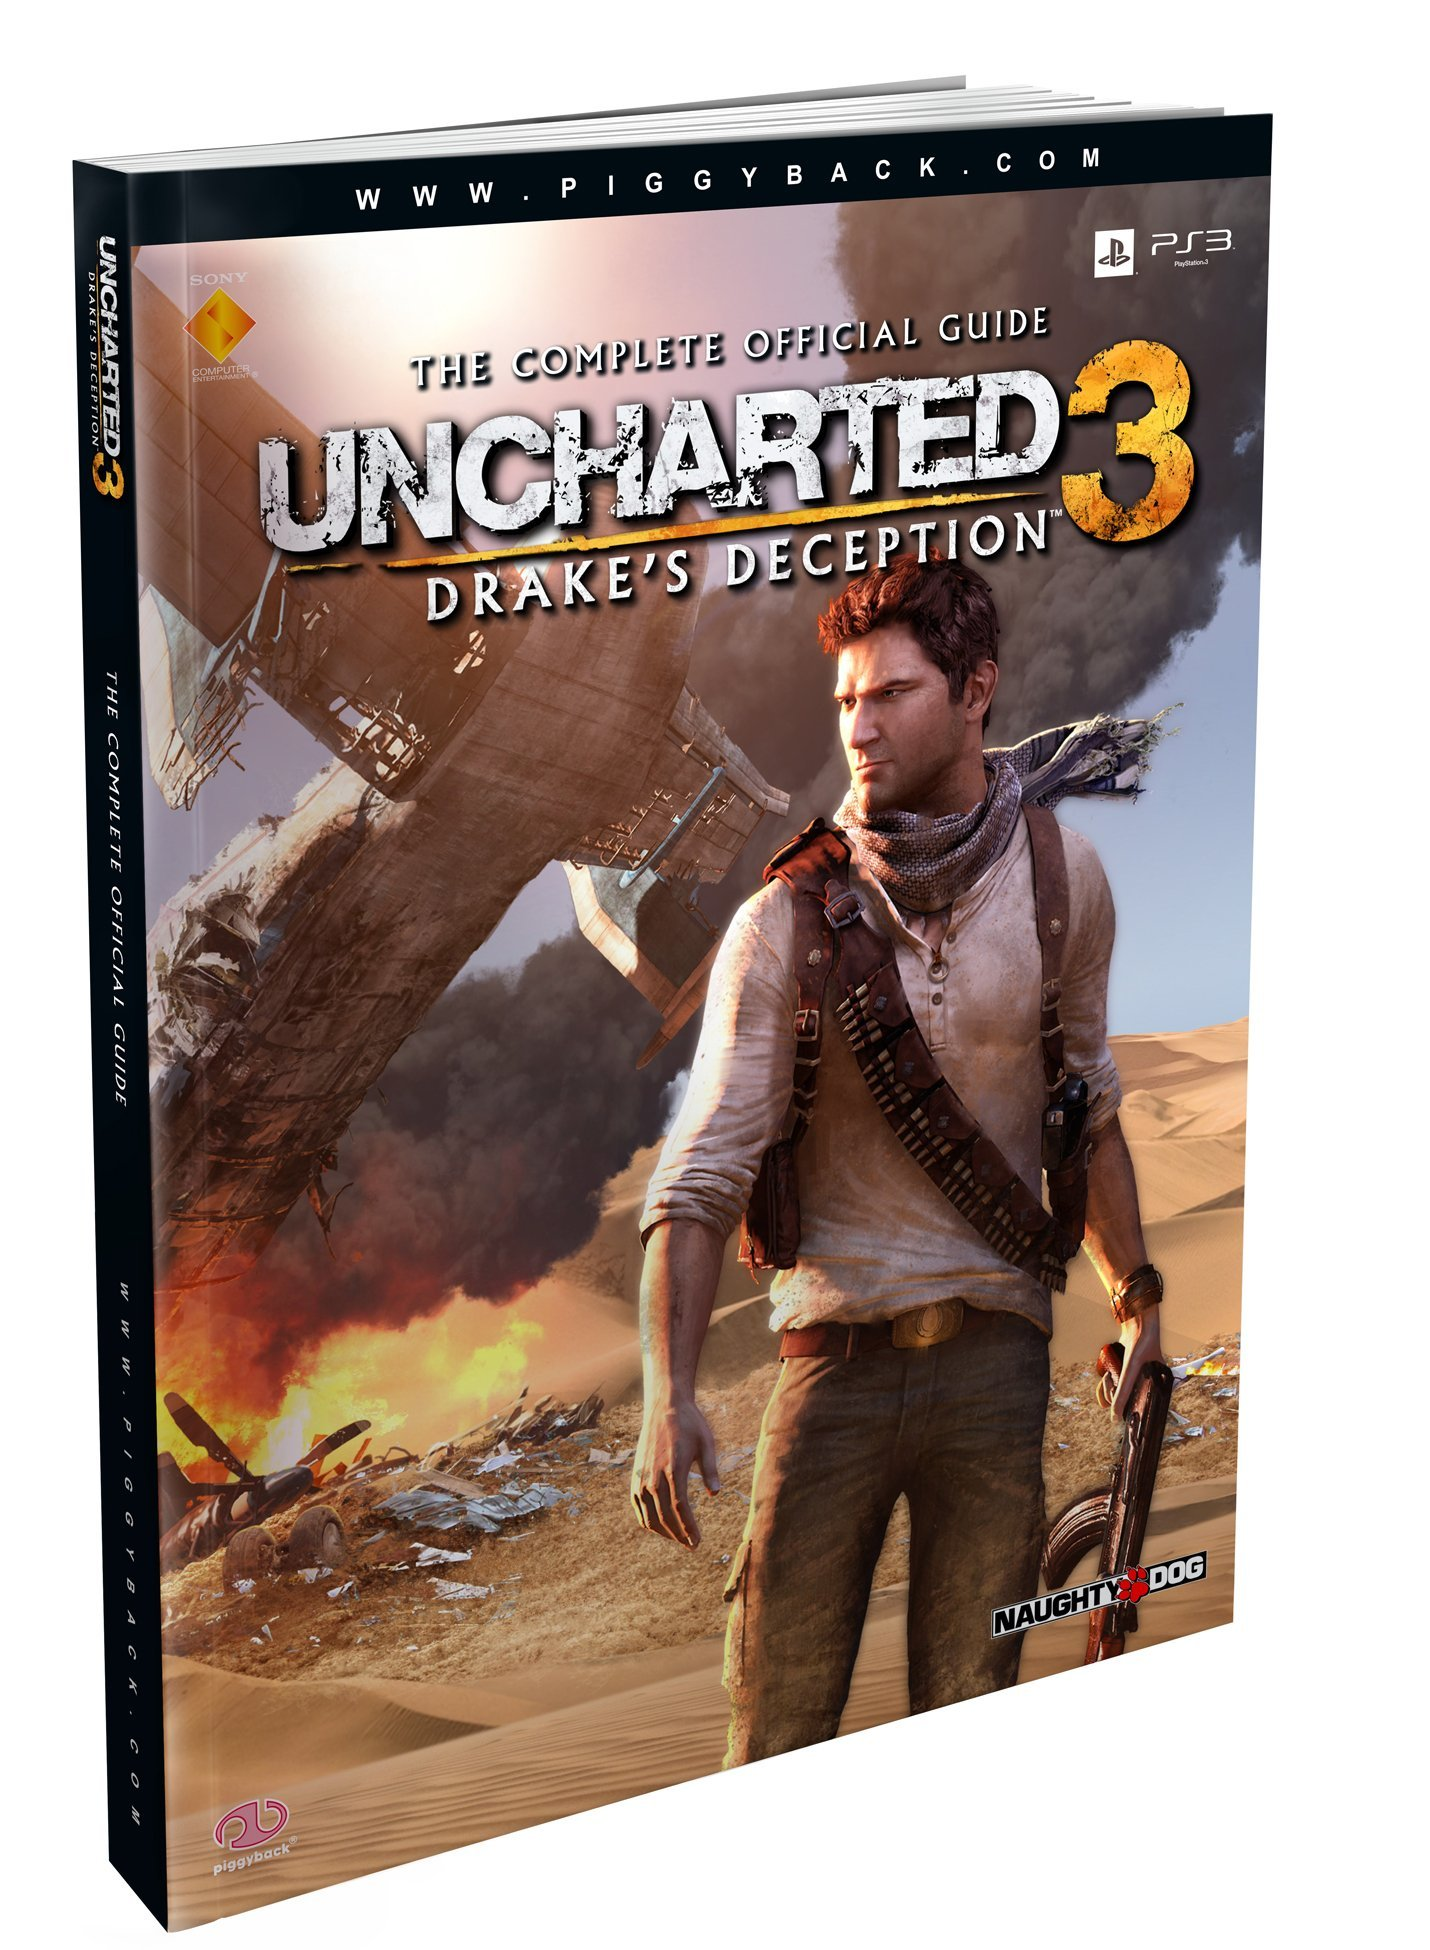 uncharted 3 drake s deception the complete official guide james rh amazon com battletech computer game guide computer game hitchhiker guide to the galaxy